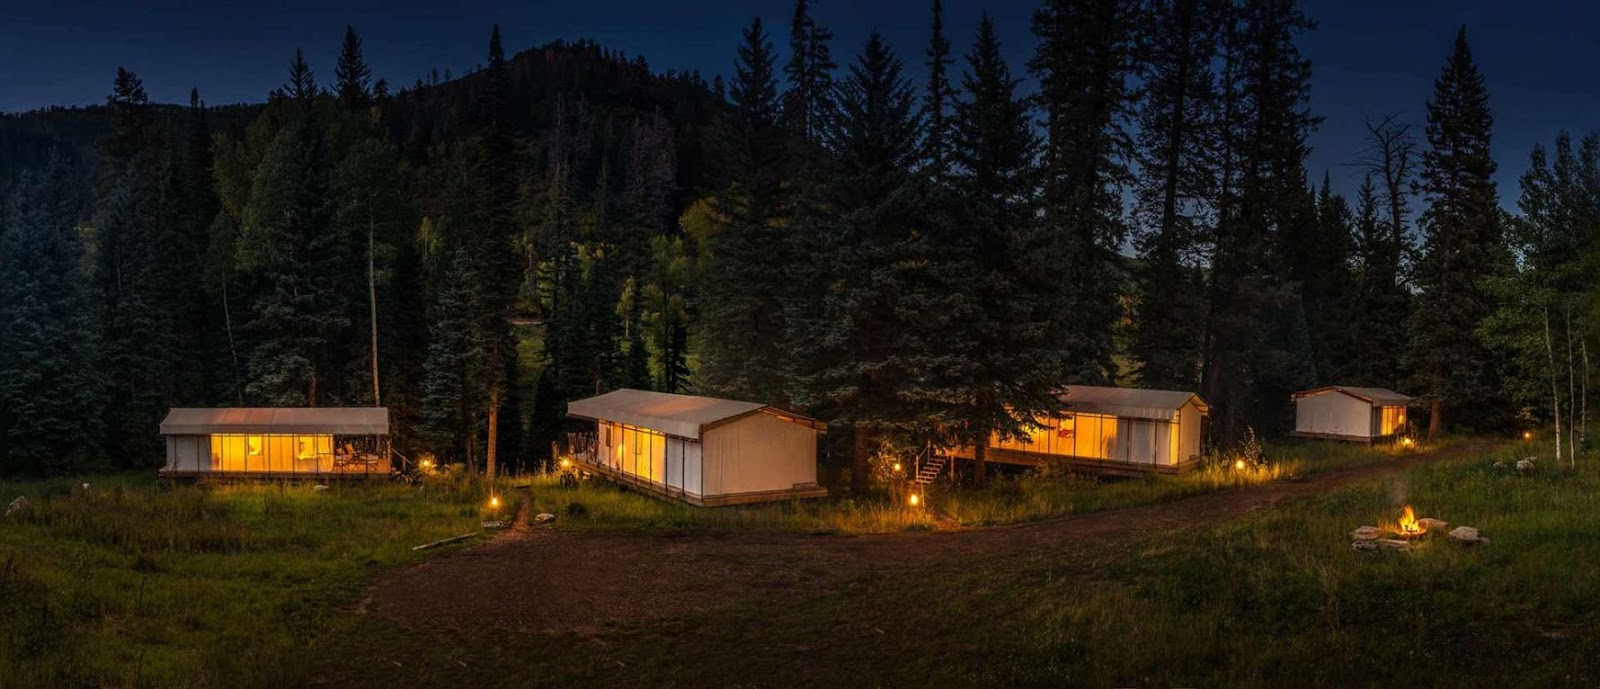 Green Goddess Glamping: How Does Vogue Magazine View Glamping?